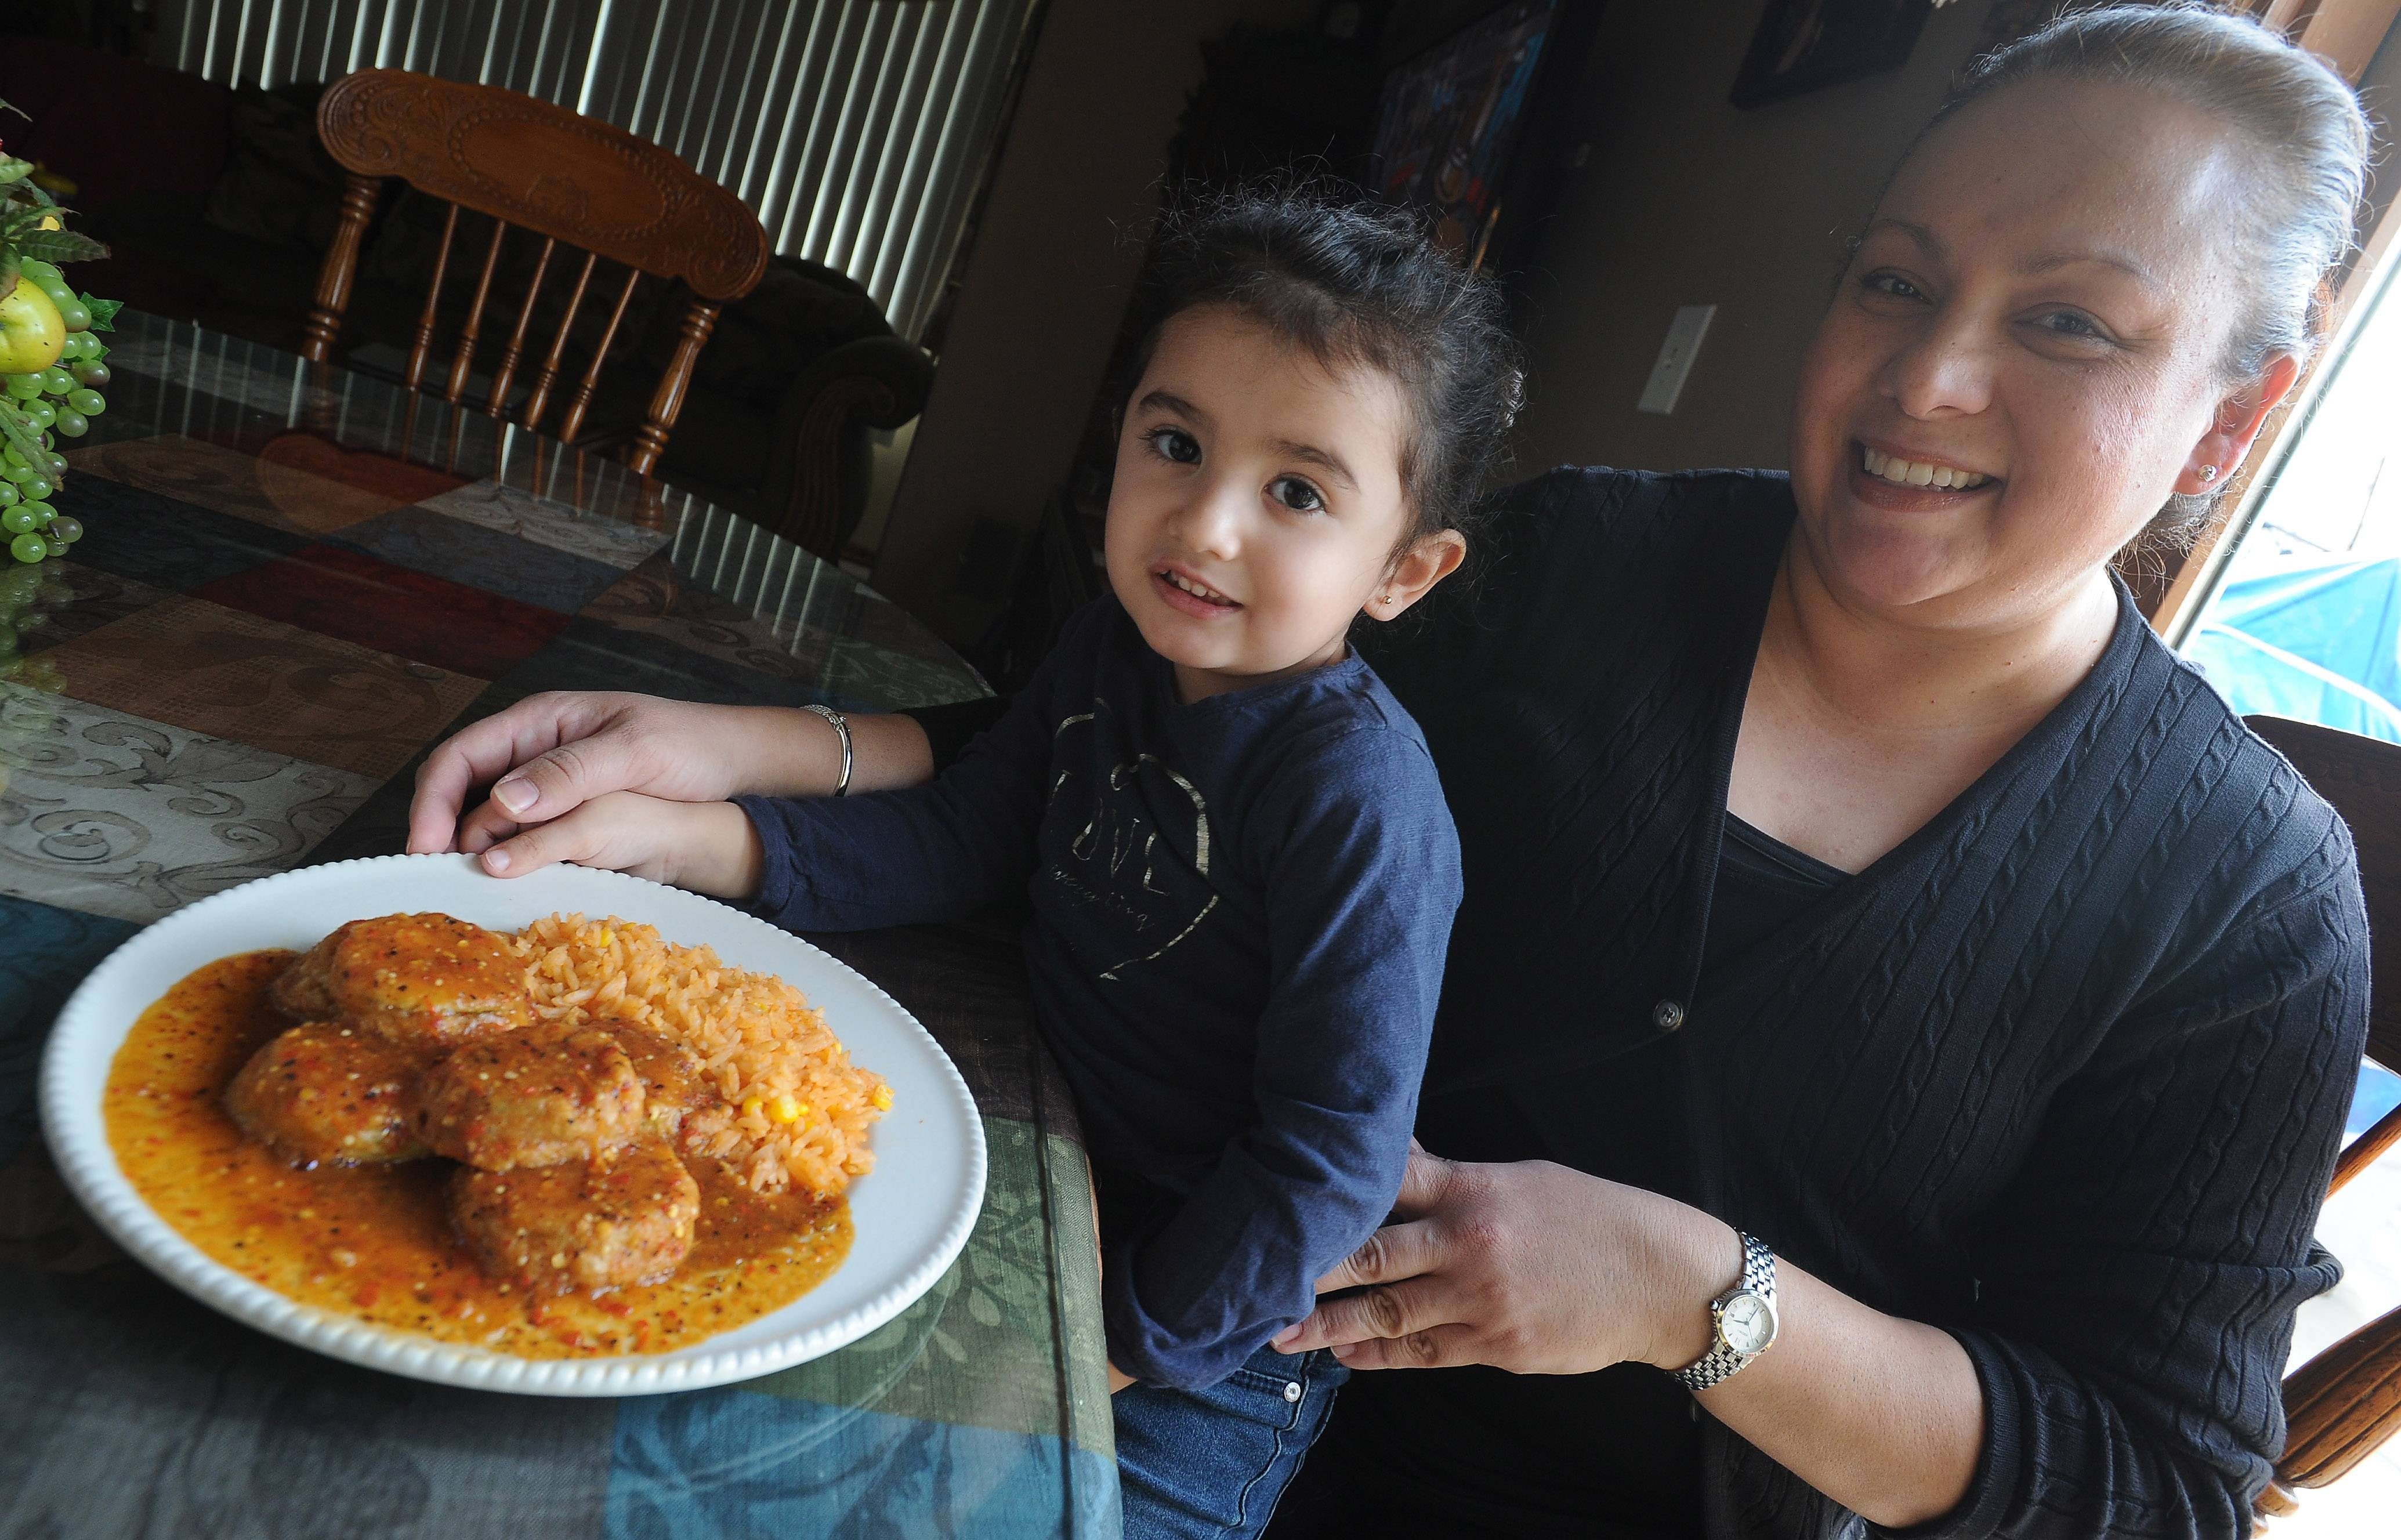 Norma Lara with her special dish the Tortitas de Calabaza she makes for her family and her granddaughter Mariana Lara, 2, in her Palatine home.